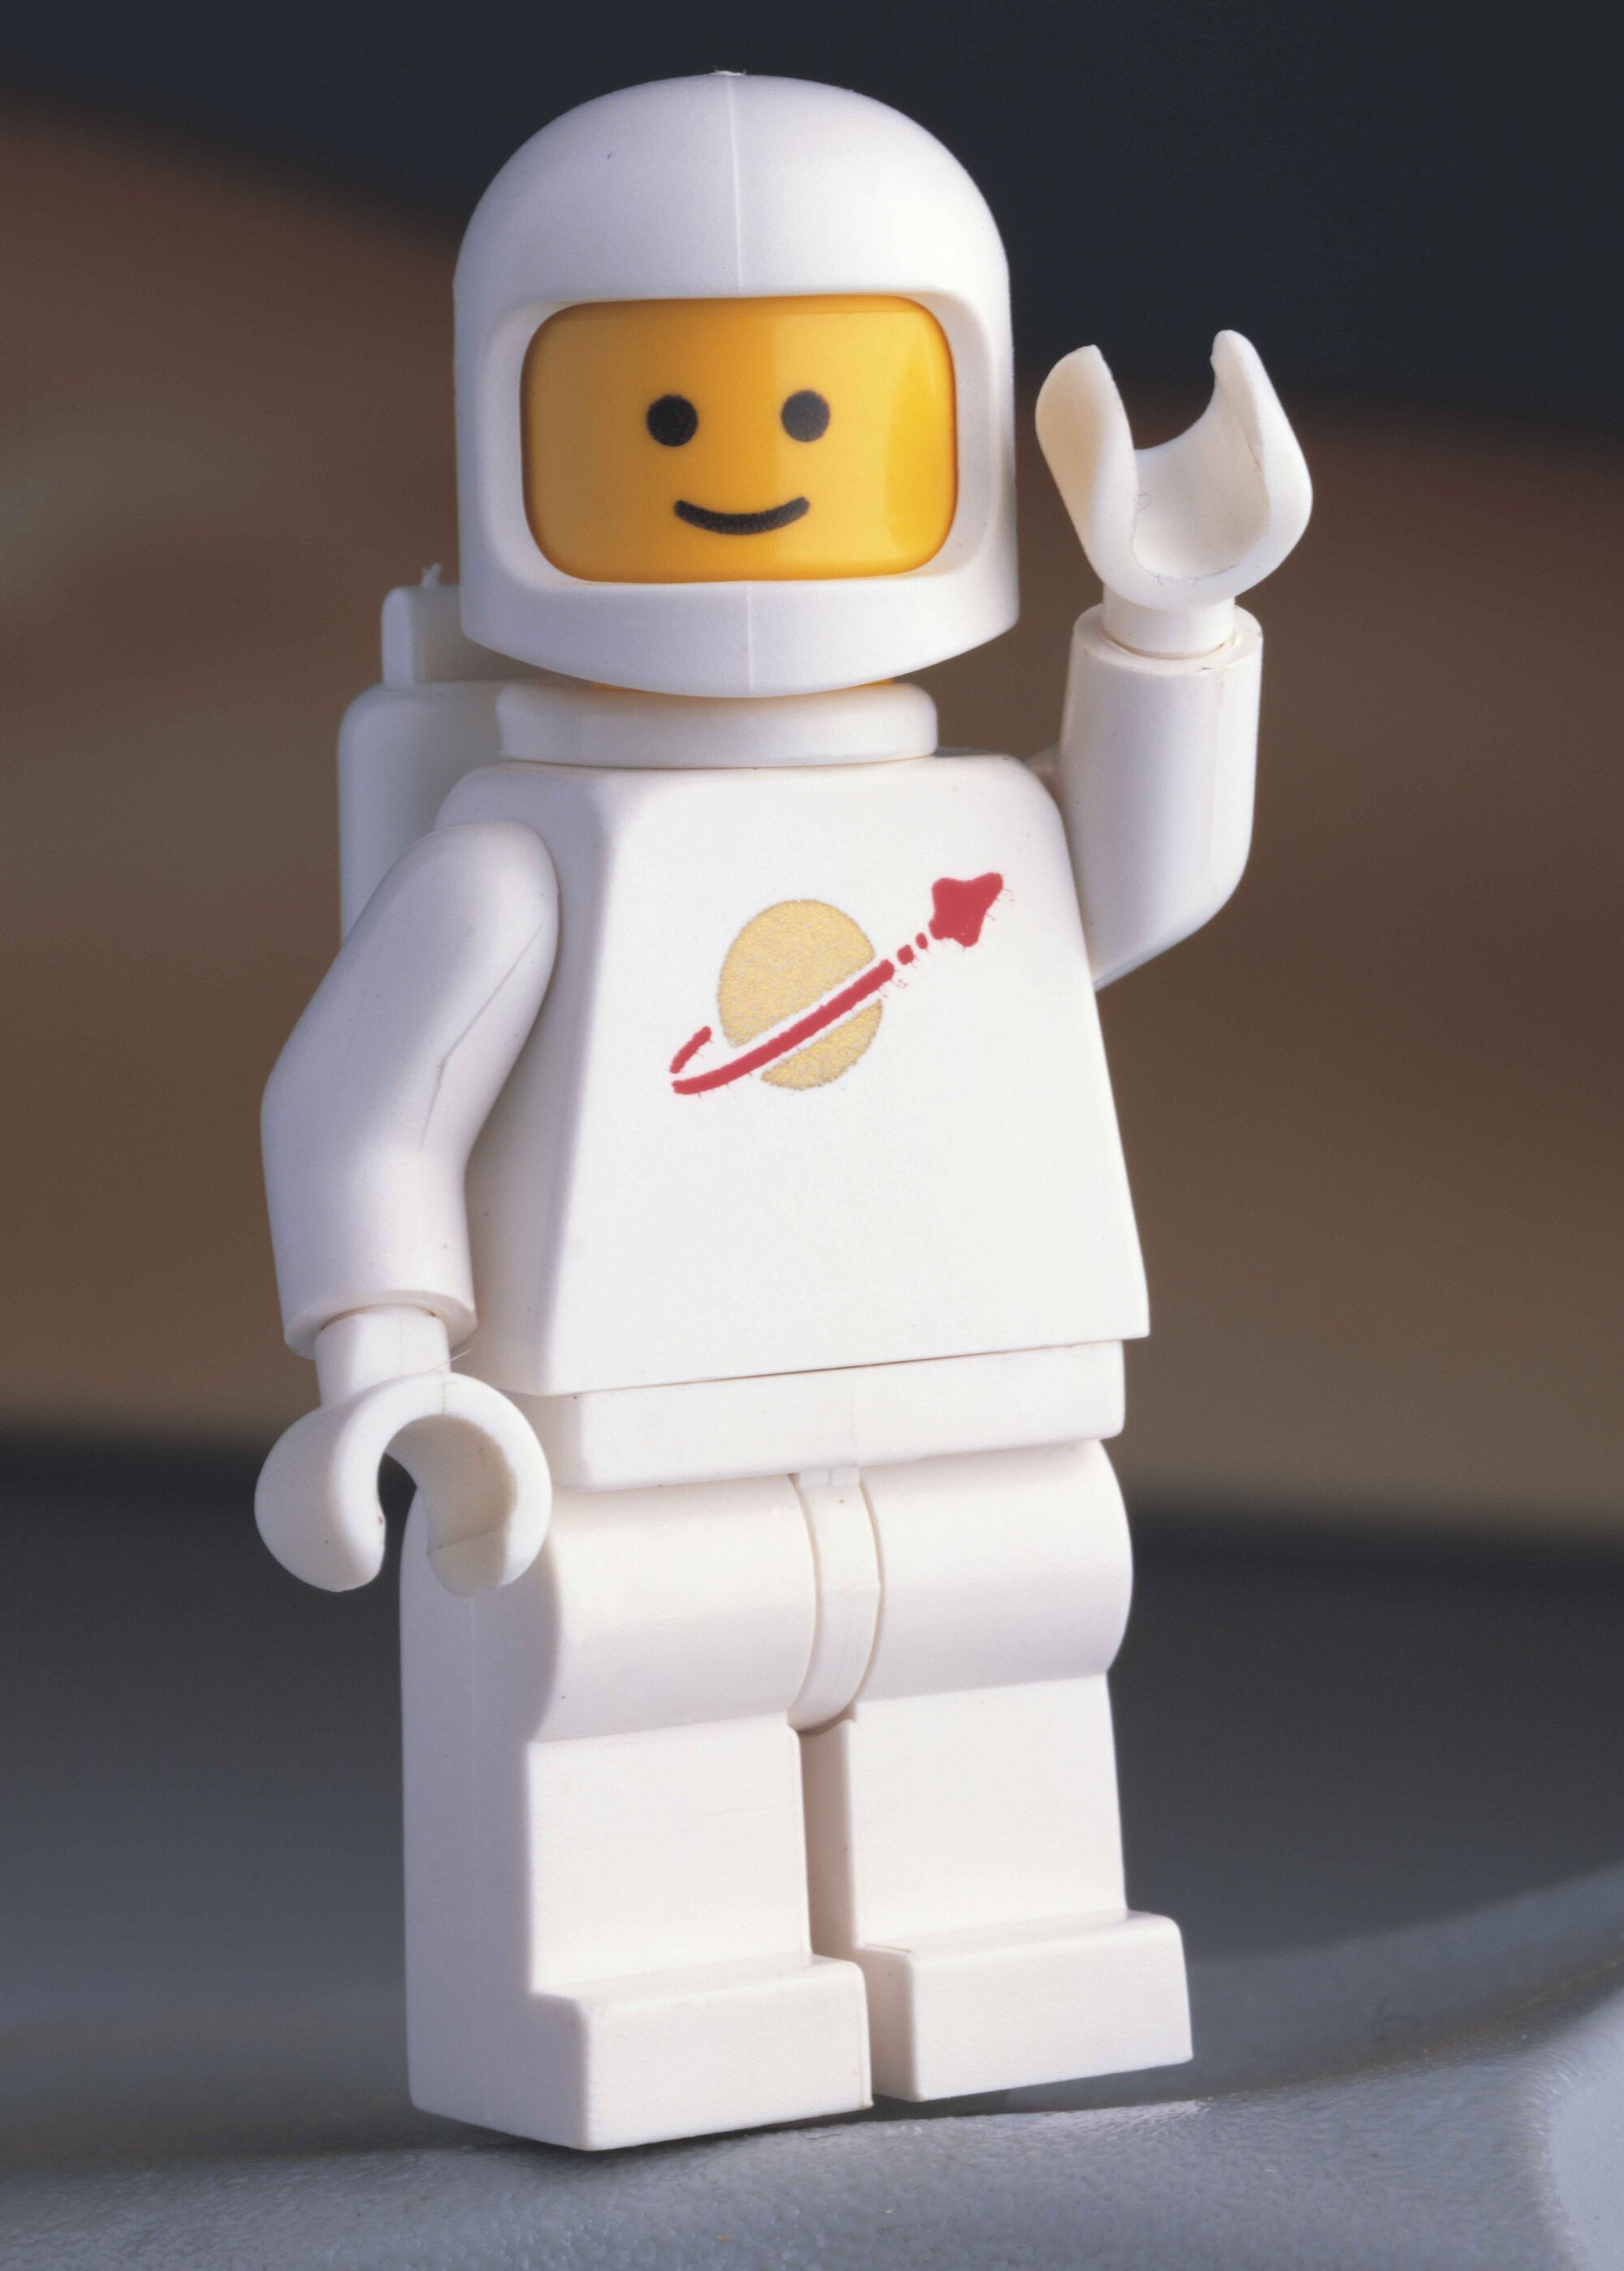 lego astronaut spaceship - photo #17